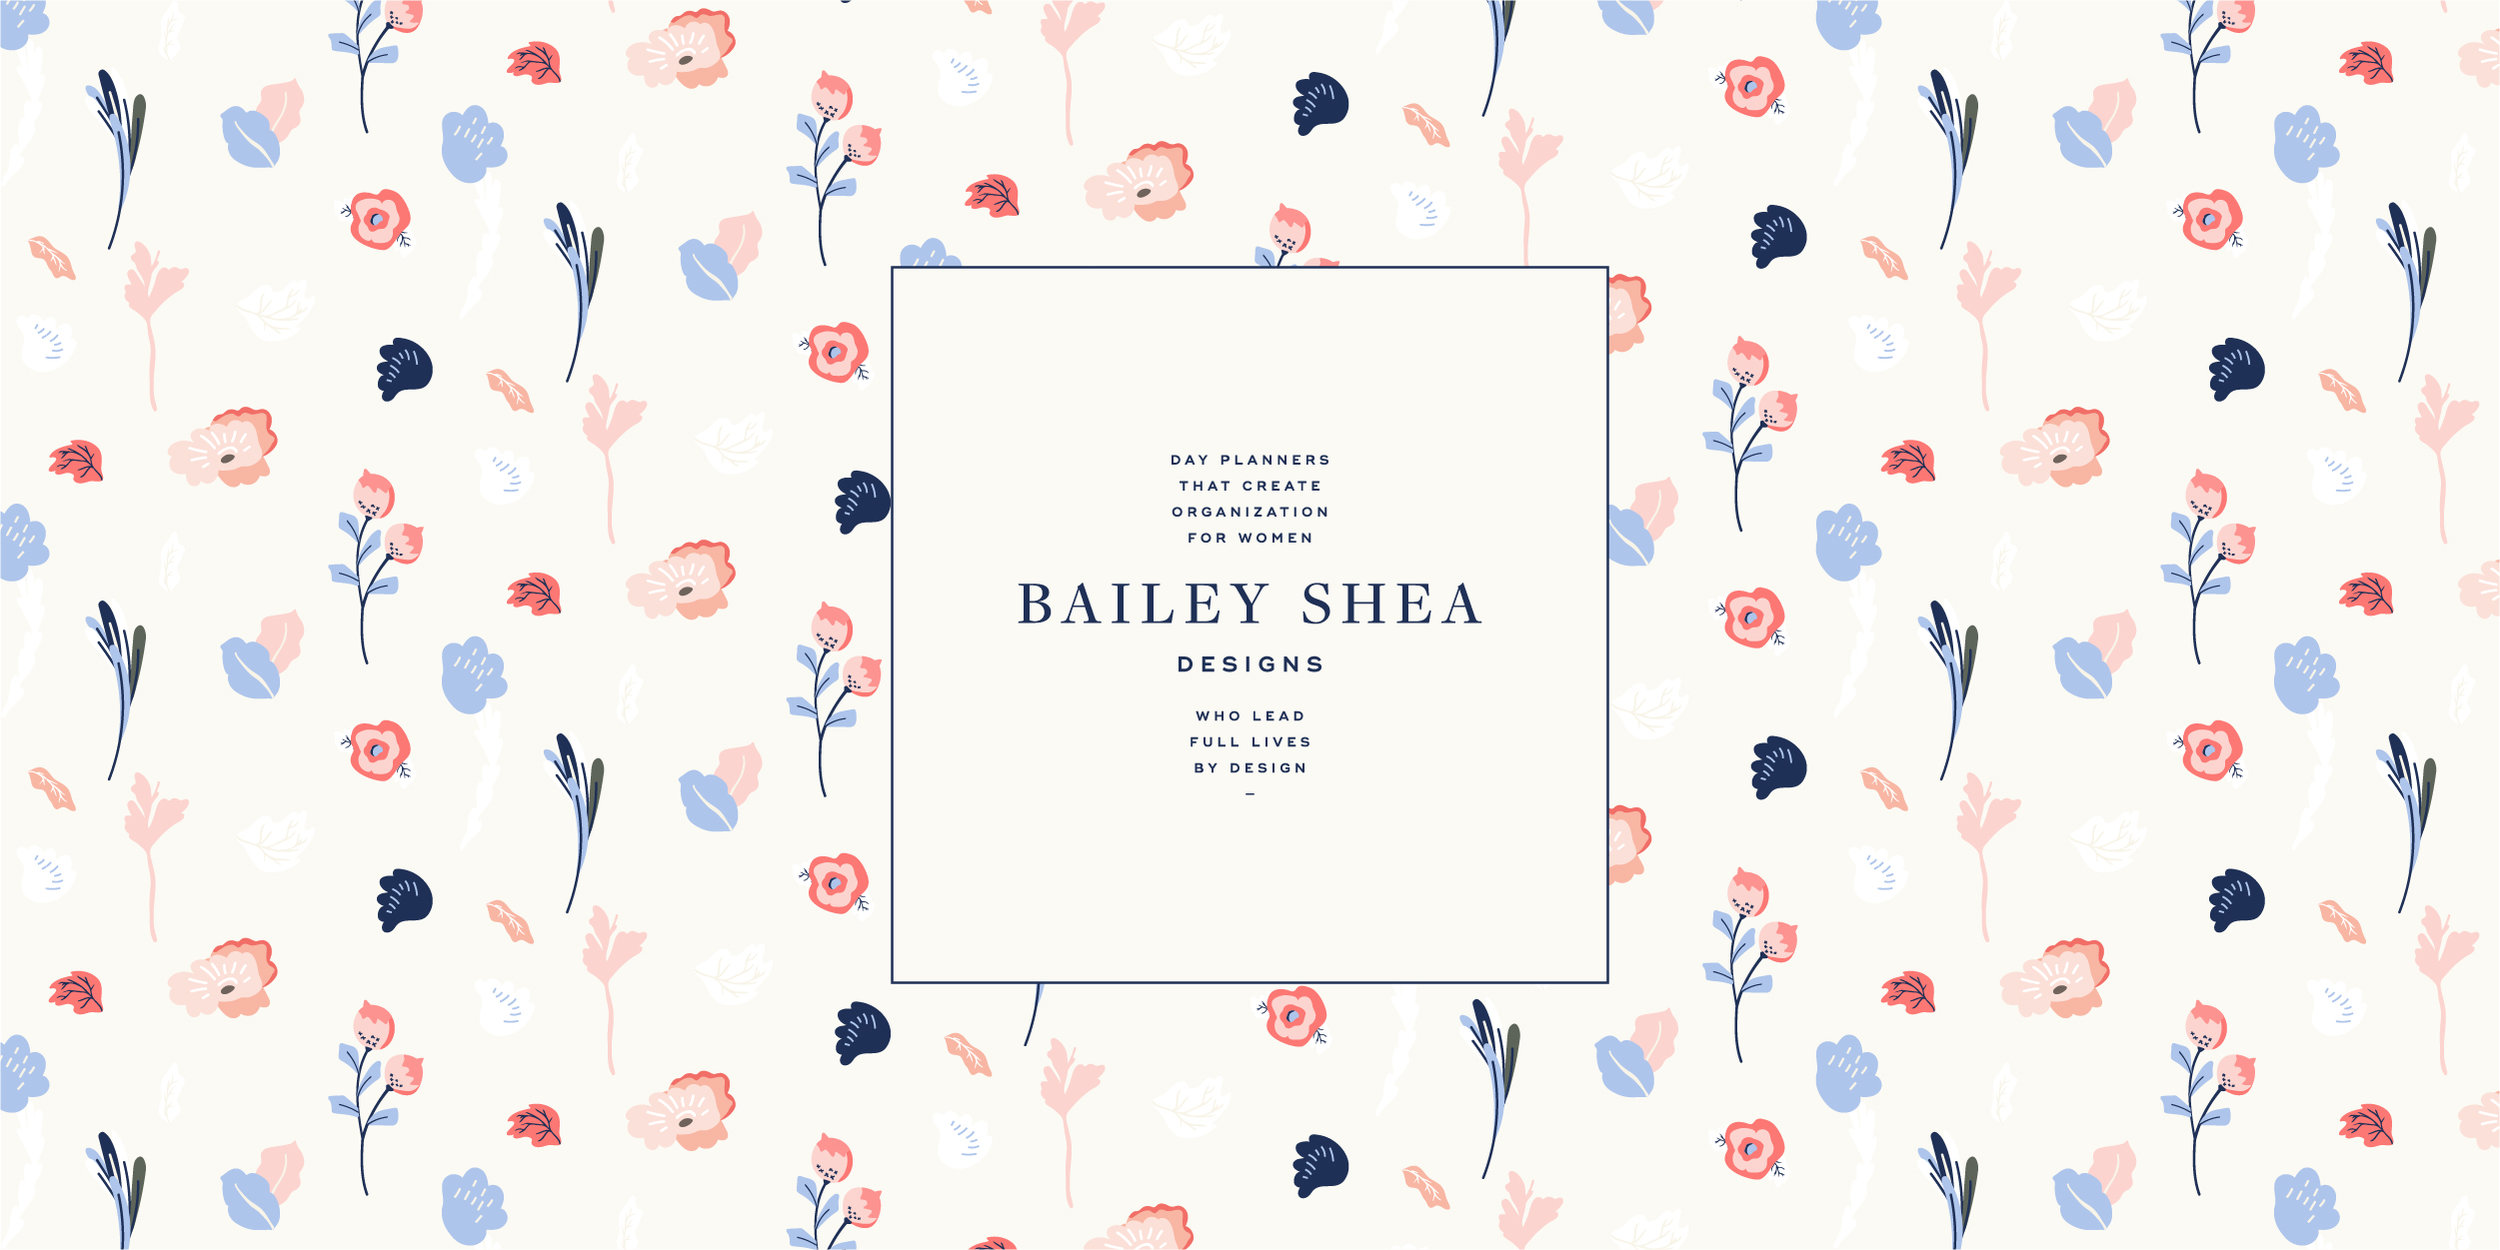 Brand design and development, strategy and packaging design for Bailey Shea Designs